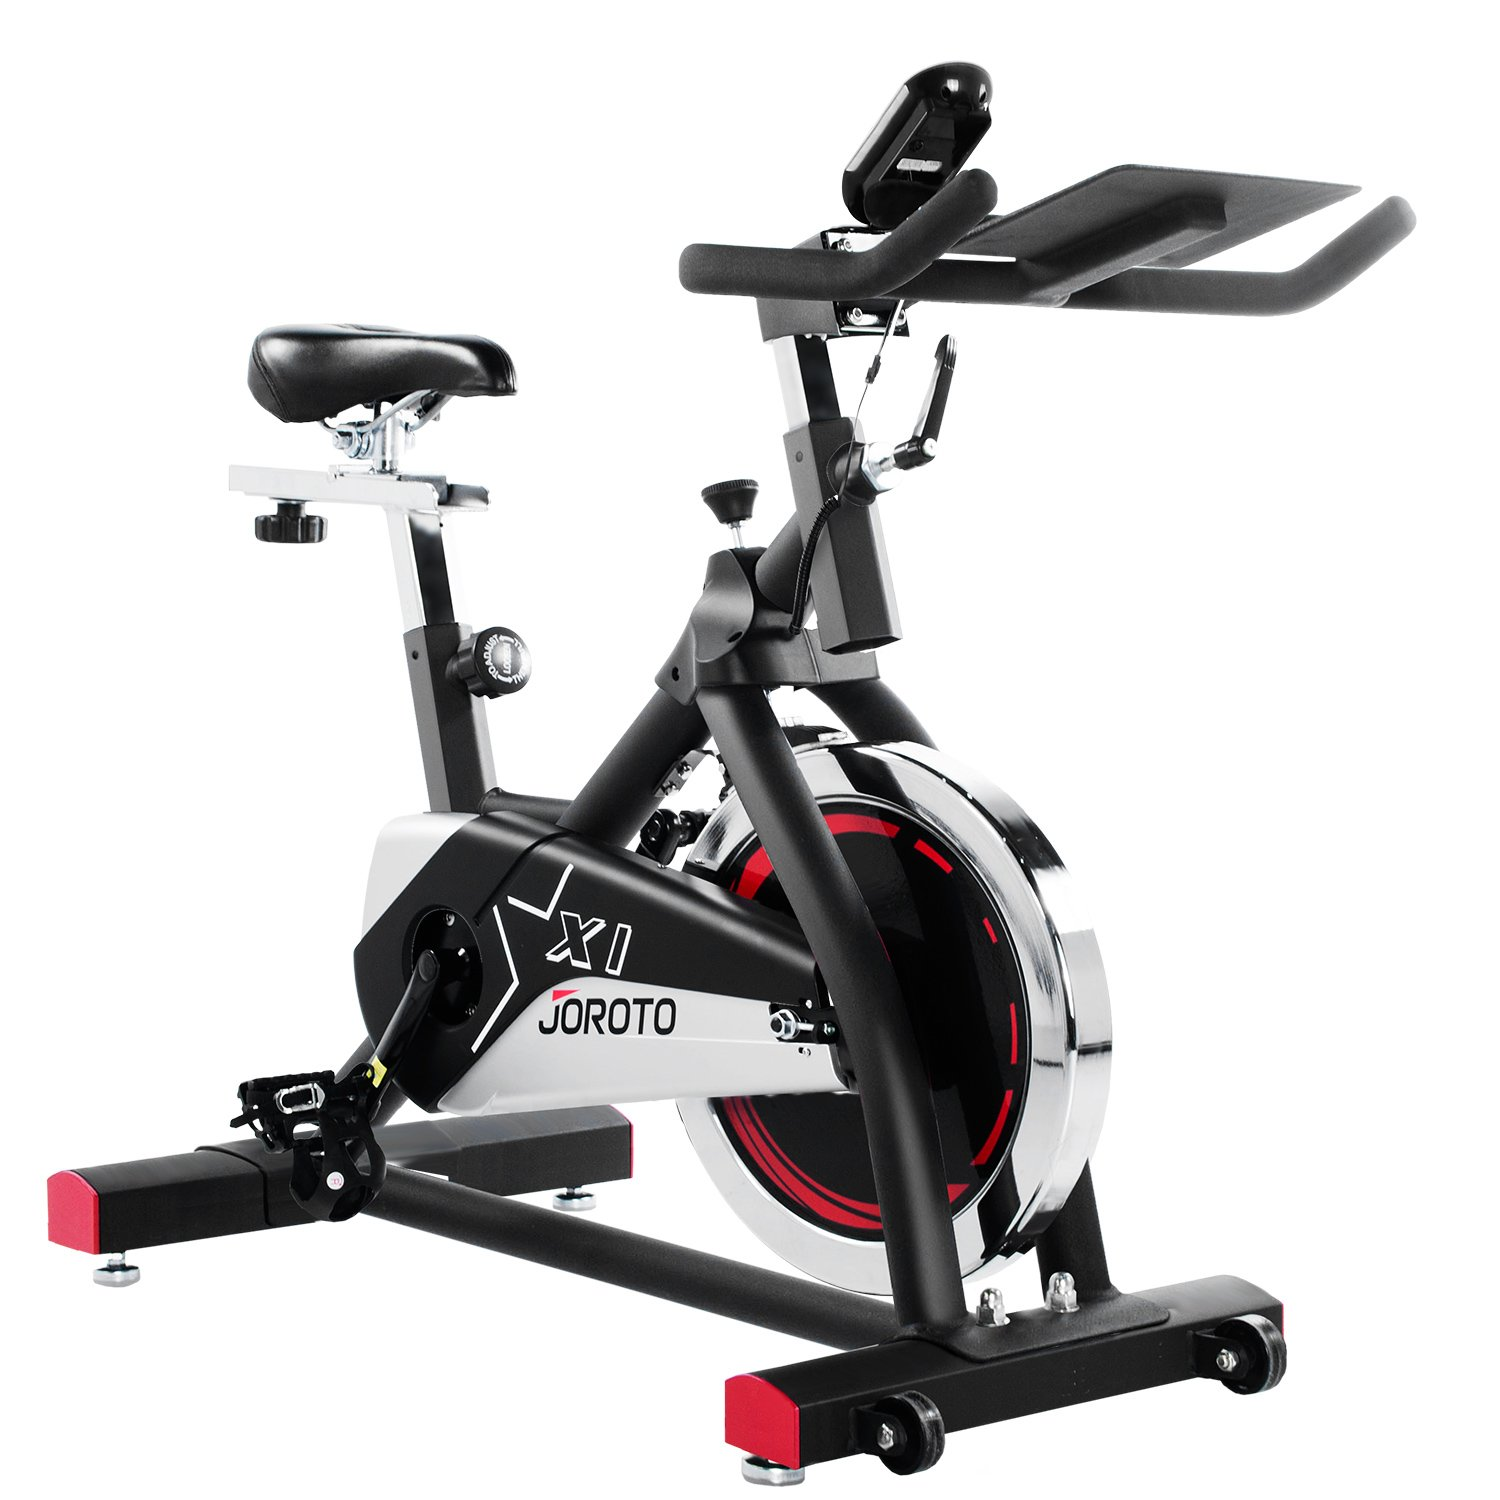 Exercise Bike Indoor Cycle Trainer - JOROTO X1S Workout Cycling Bicycle Exercise Stationary Bike Machine for Home Cycle